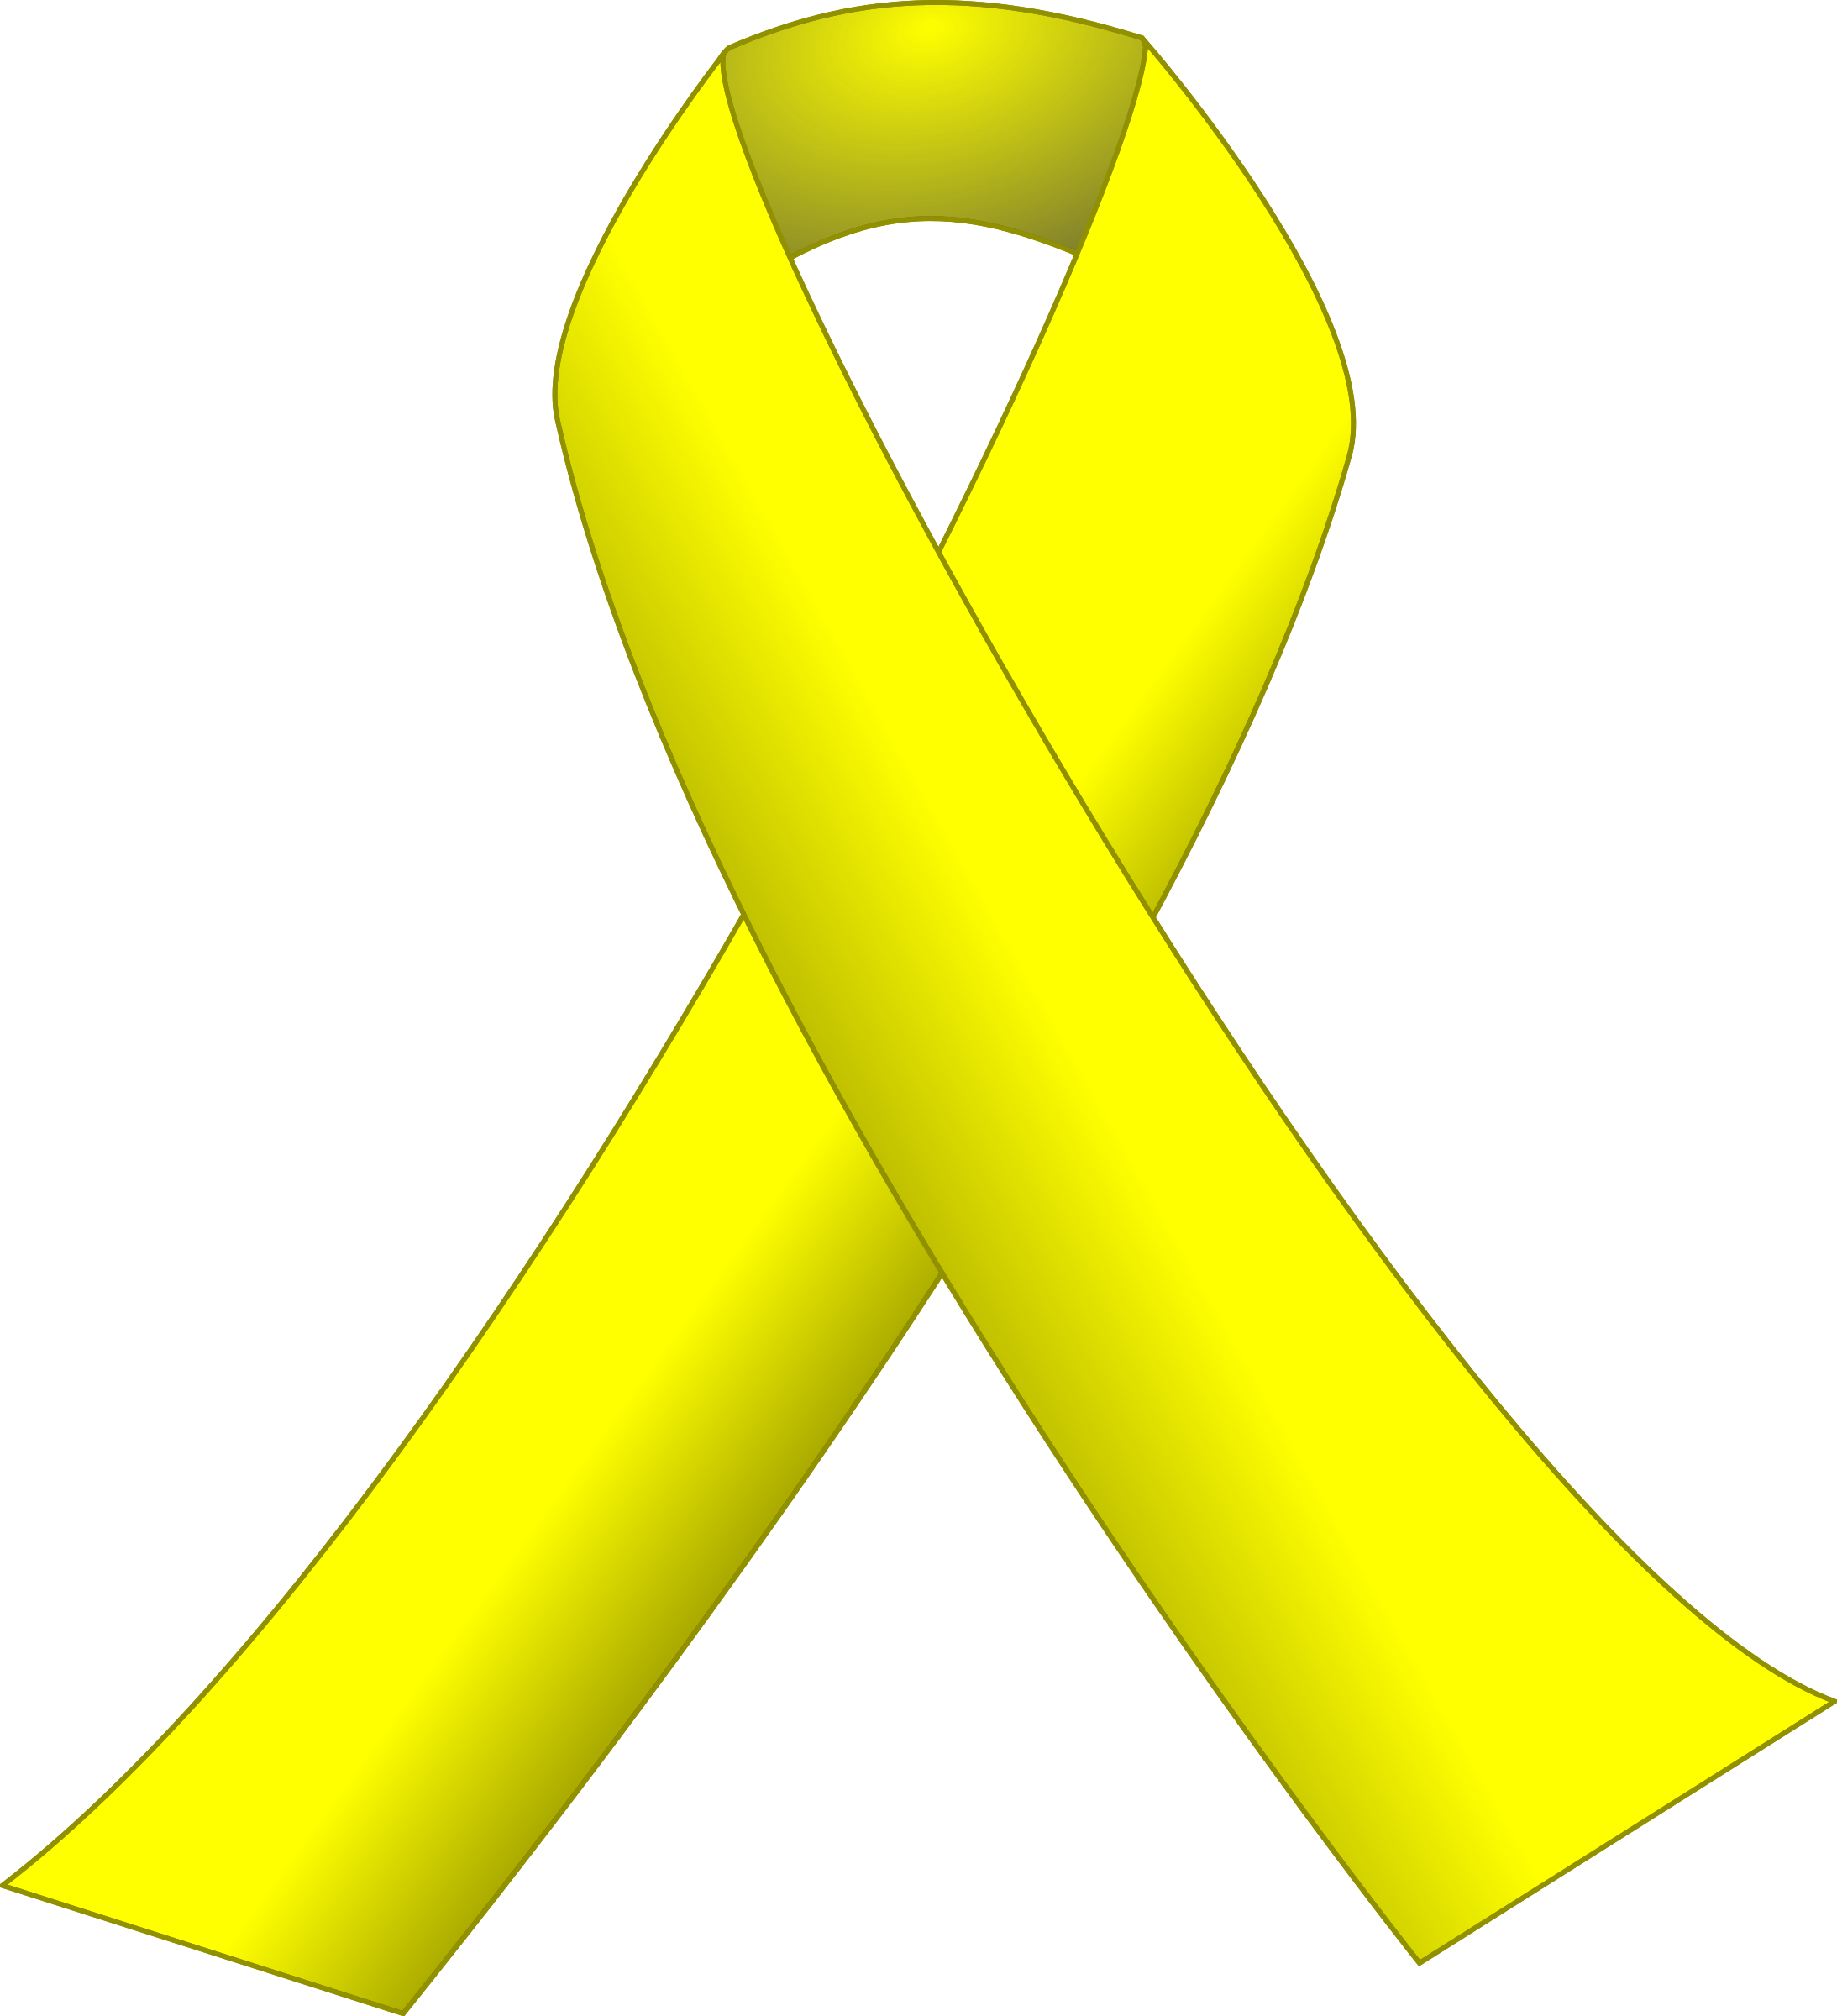 Yellow Cancer Ribbon Black Background.